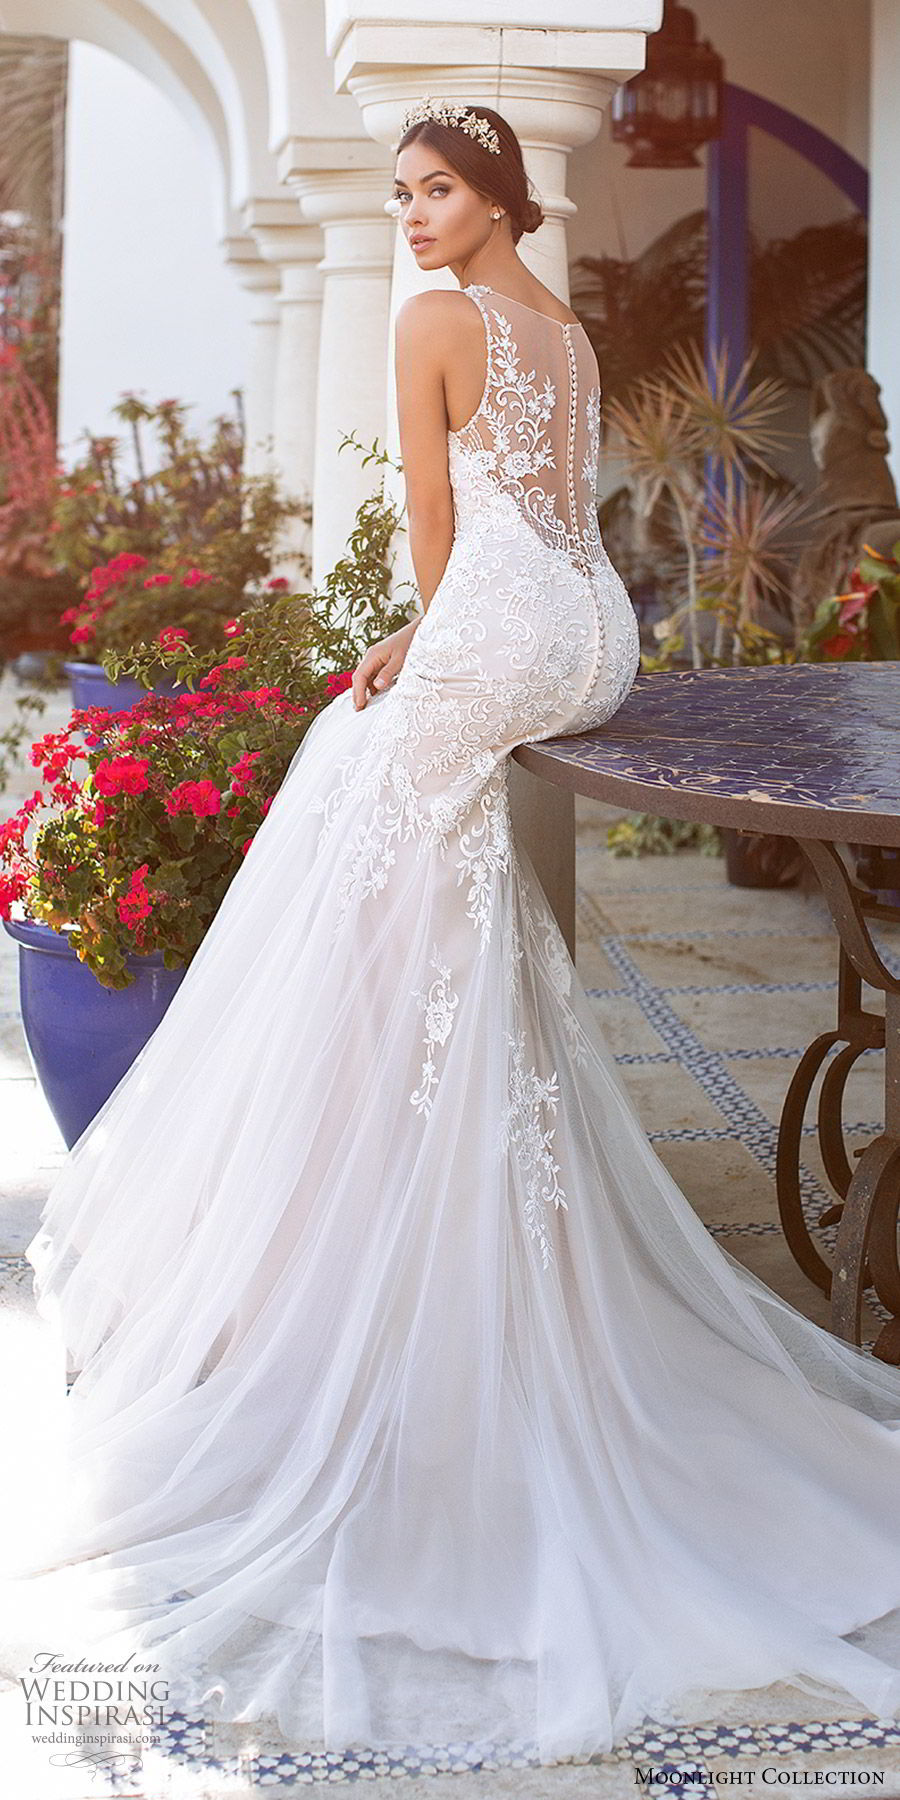 moonlight collection fall 2019 bridal sleeveless sweetheart straps embellished bodice fit flare mermaid wedding dress (1) illusion low back sweep train sleek elegant zbv